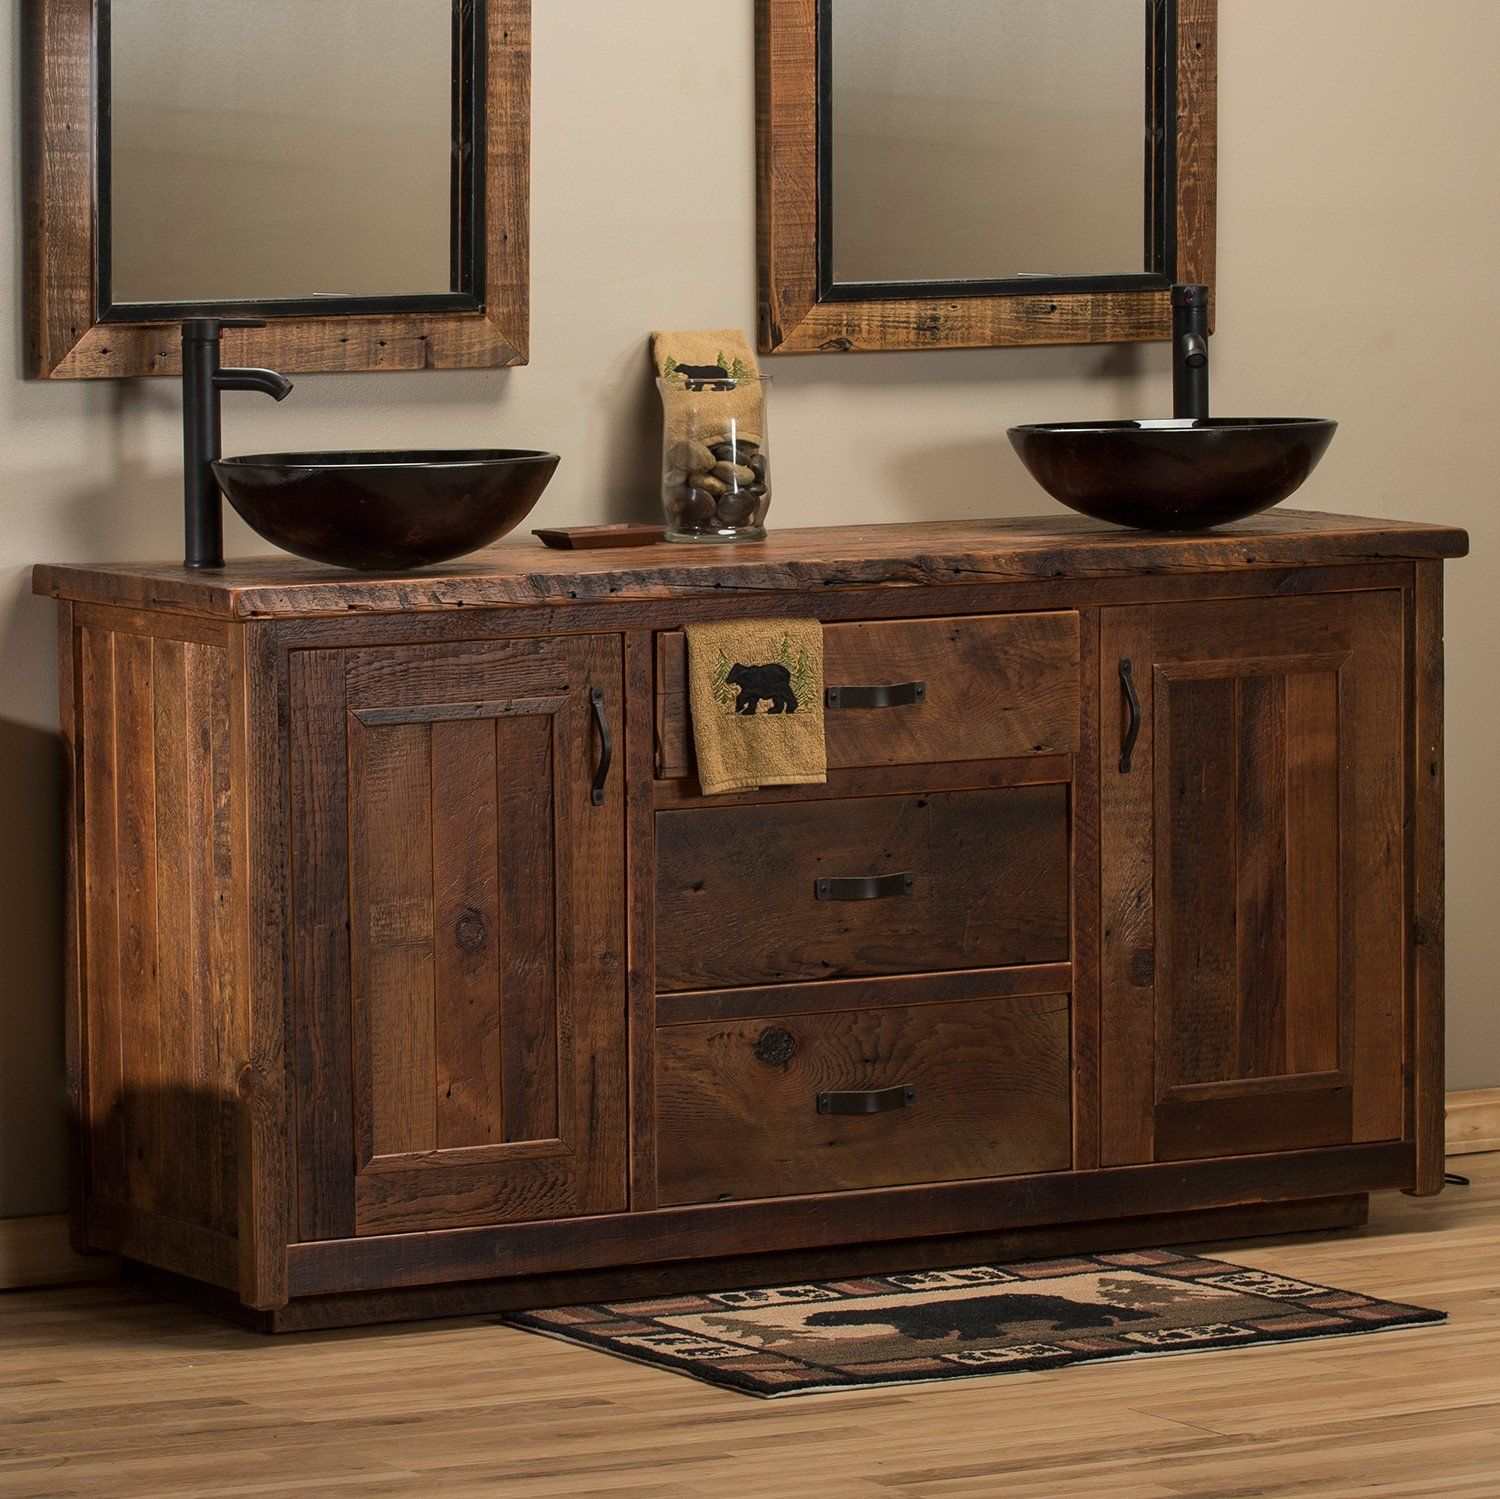 Timber Frame Barn Wood Vanity With Images Rustic Bathroom